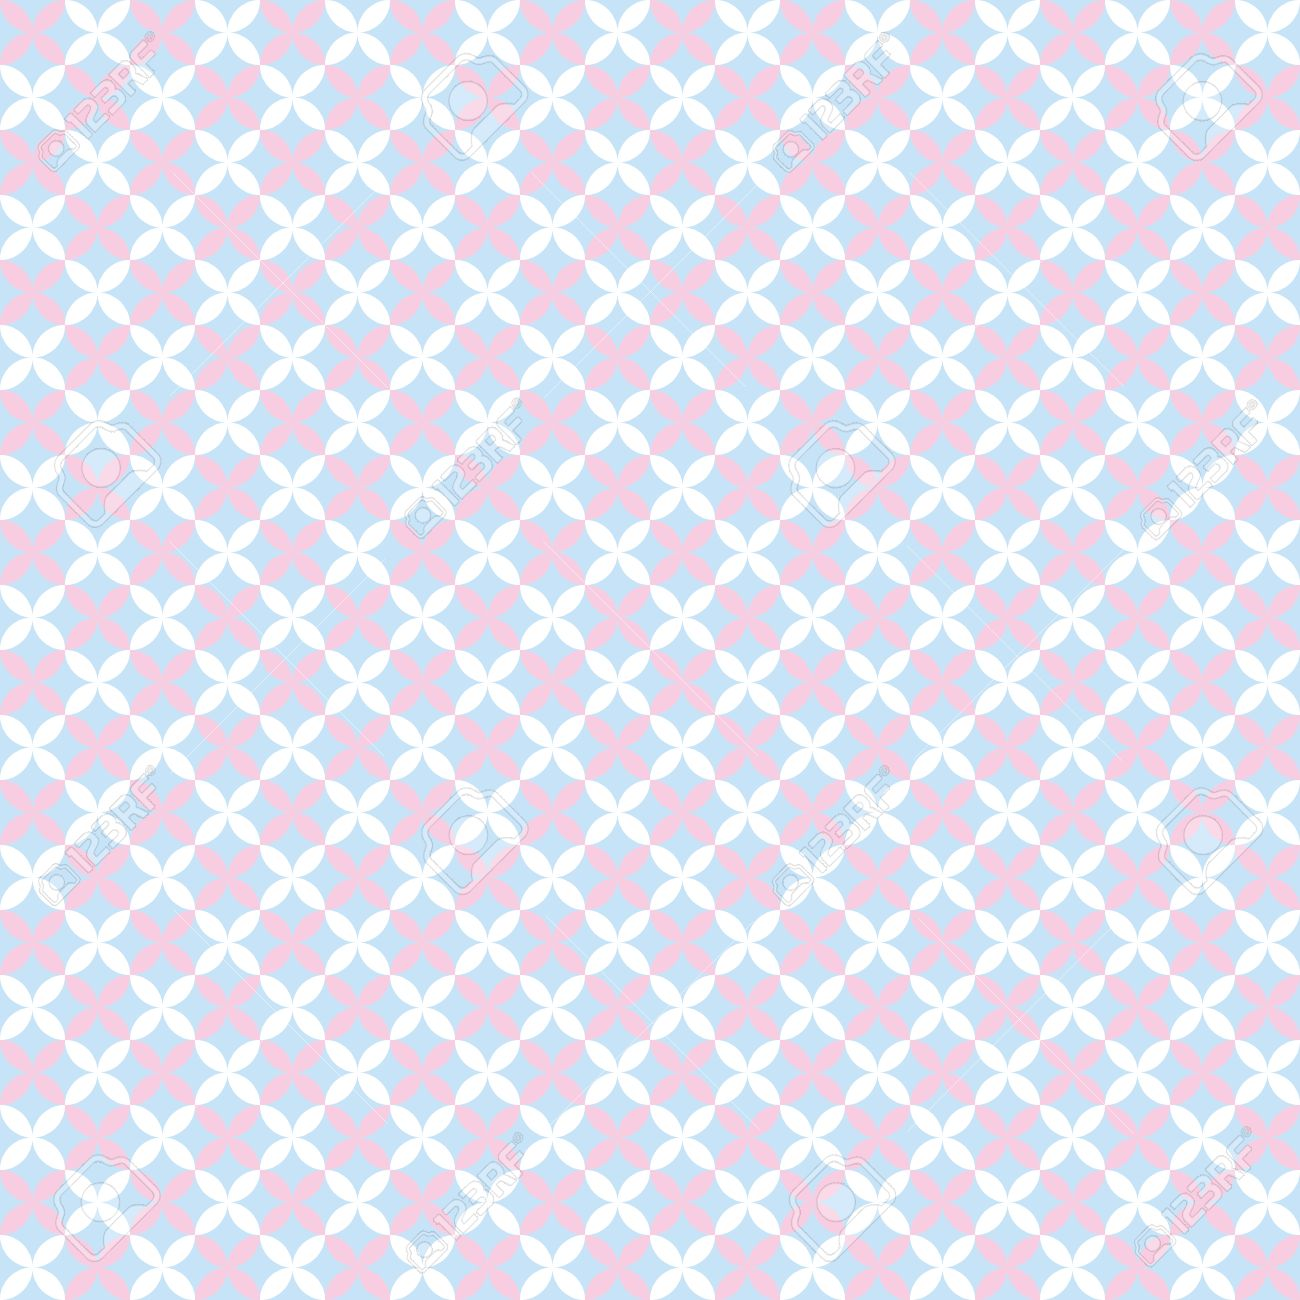 Baby Pastel Different Vector Seamless Pattern Tiling Endless ...